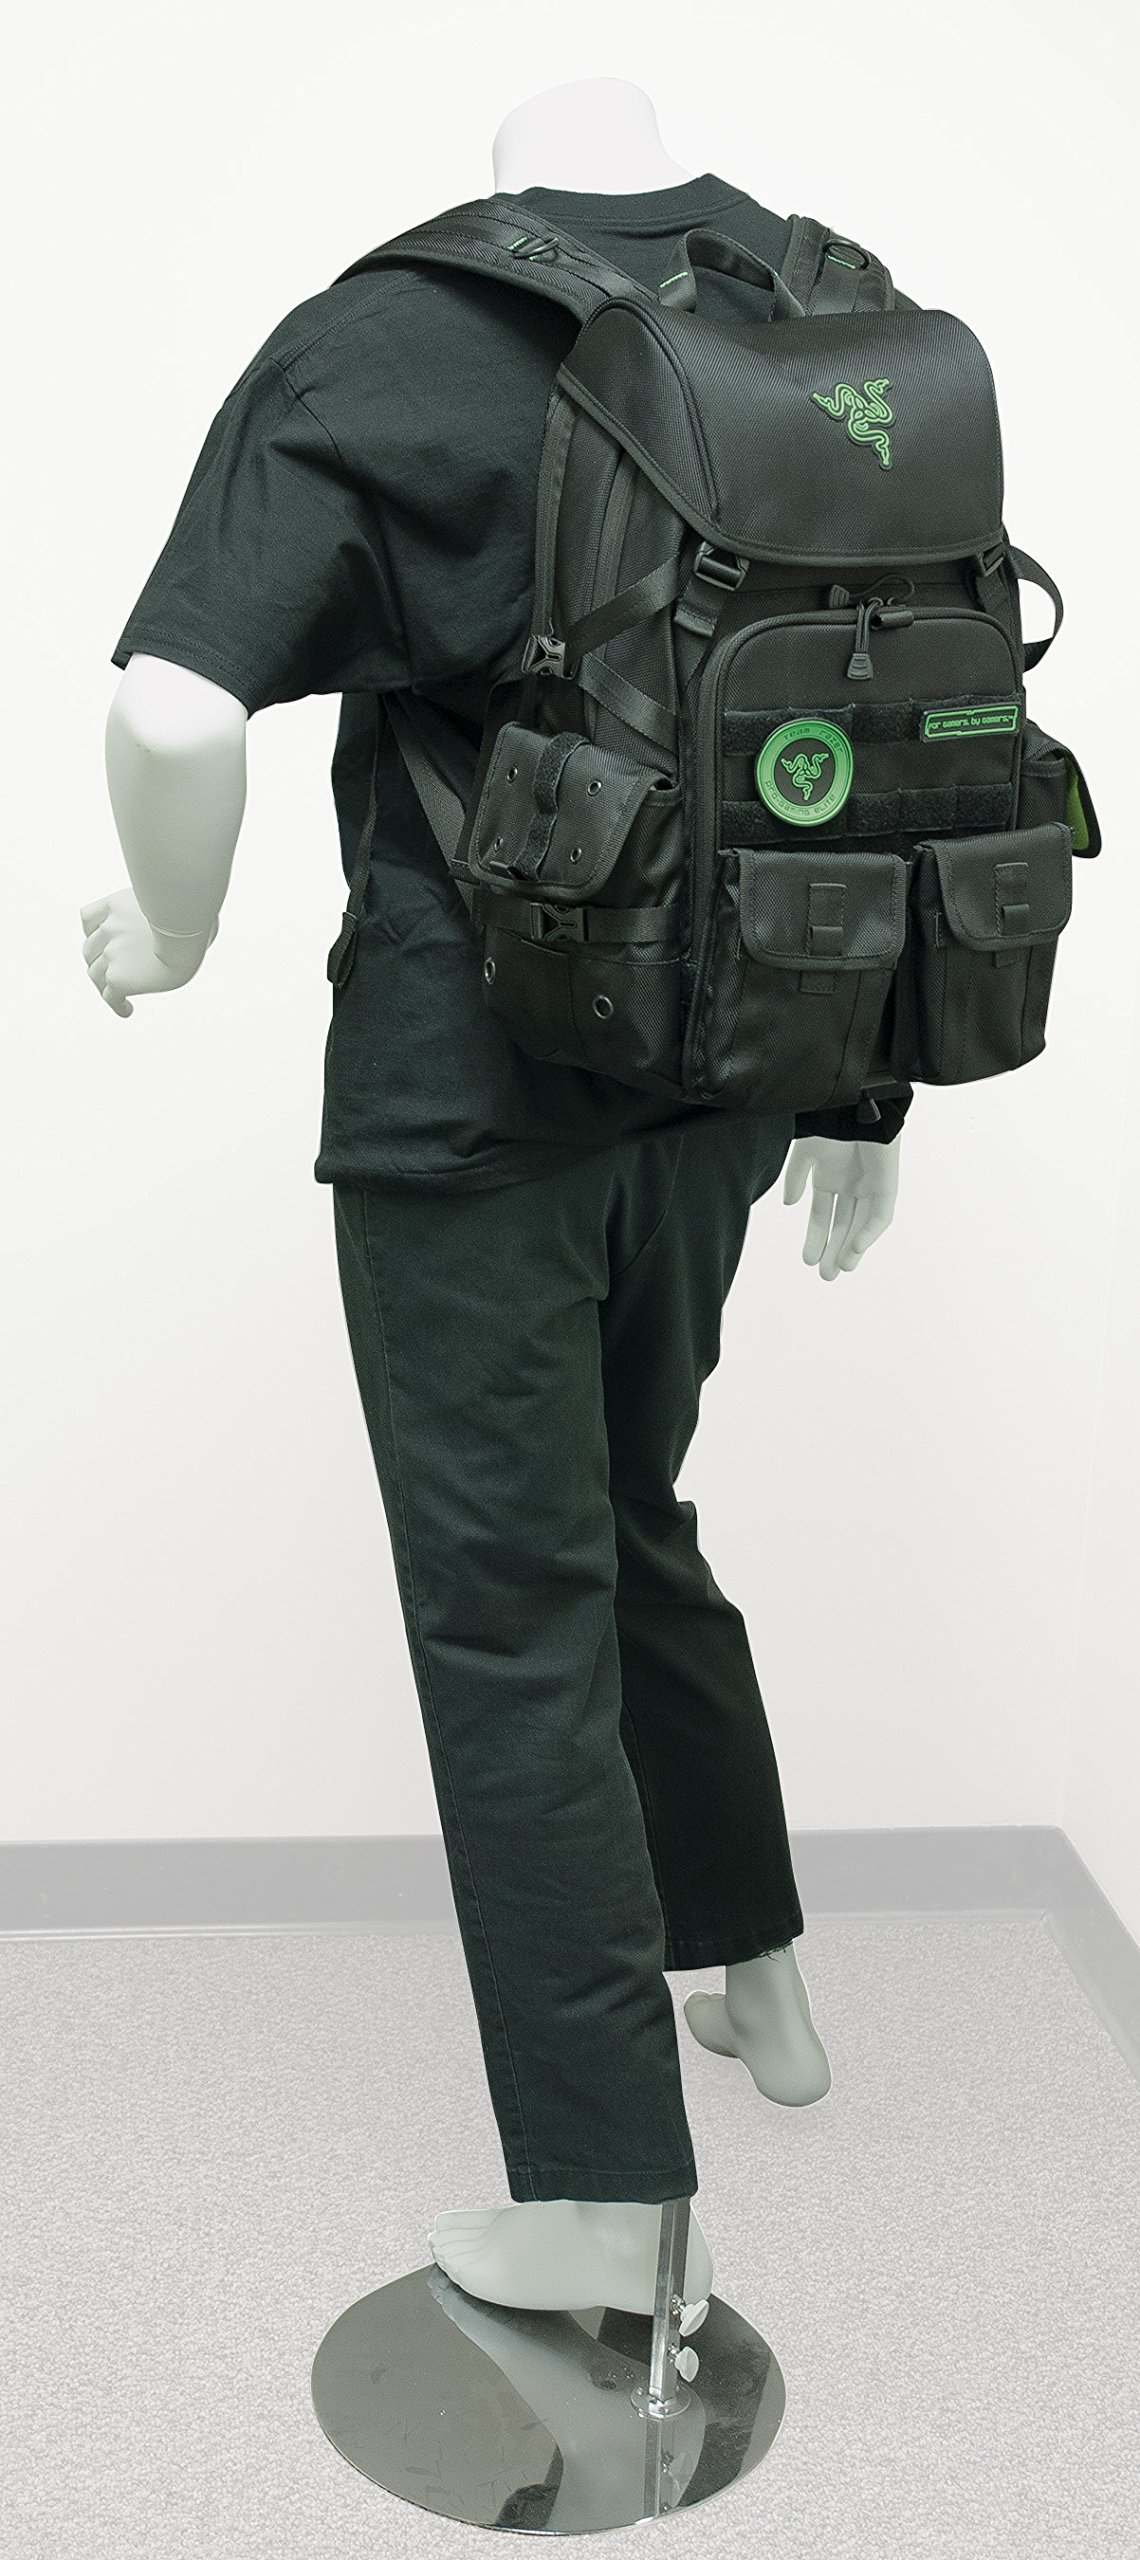 Mobile Edge 17'' Razer Pro Tactical Backpack by Unknown (Image #6)